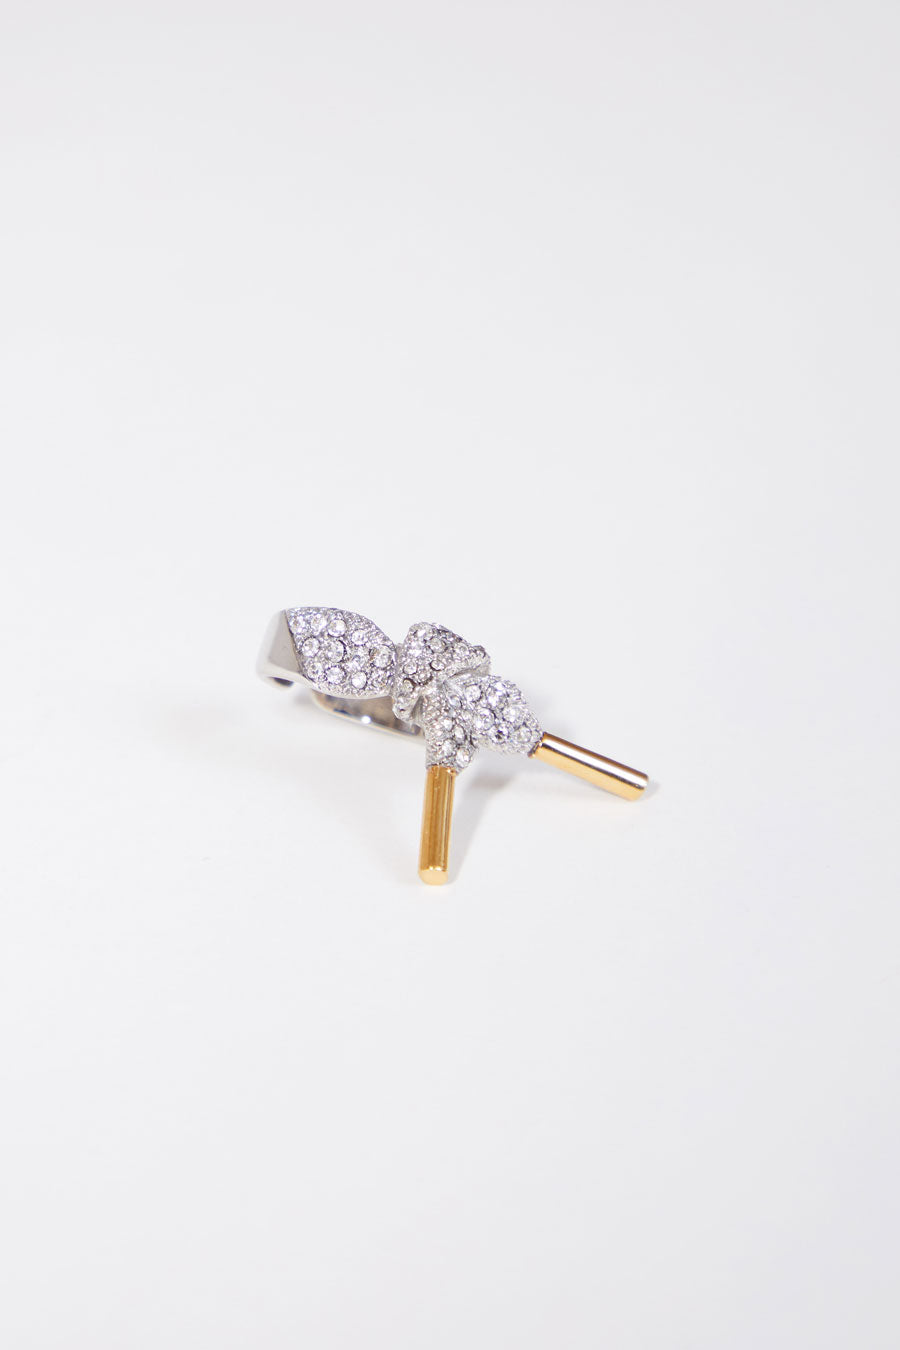 Schield Laces Ring in Palladium Gold Swarovski Crystal Silver Shade